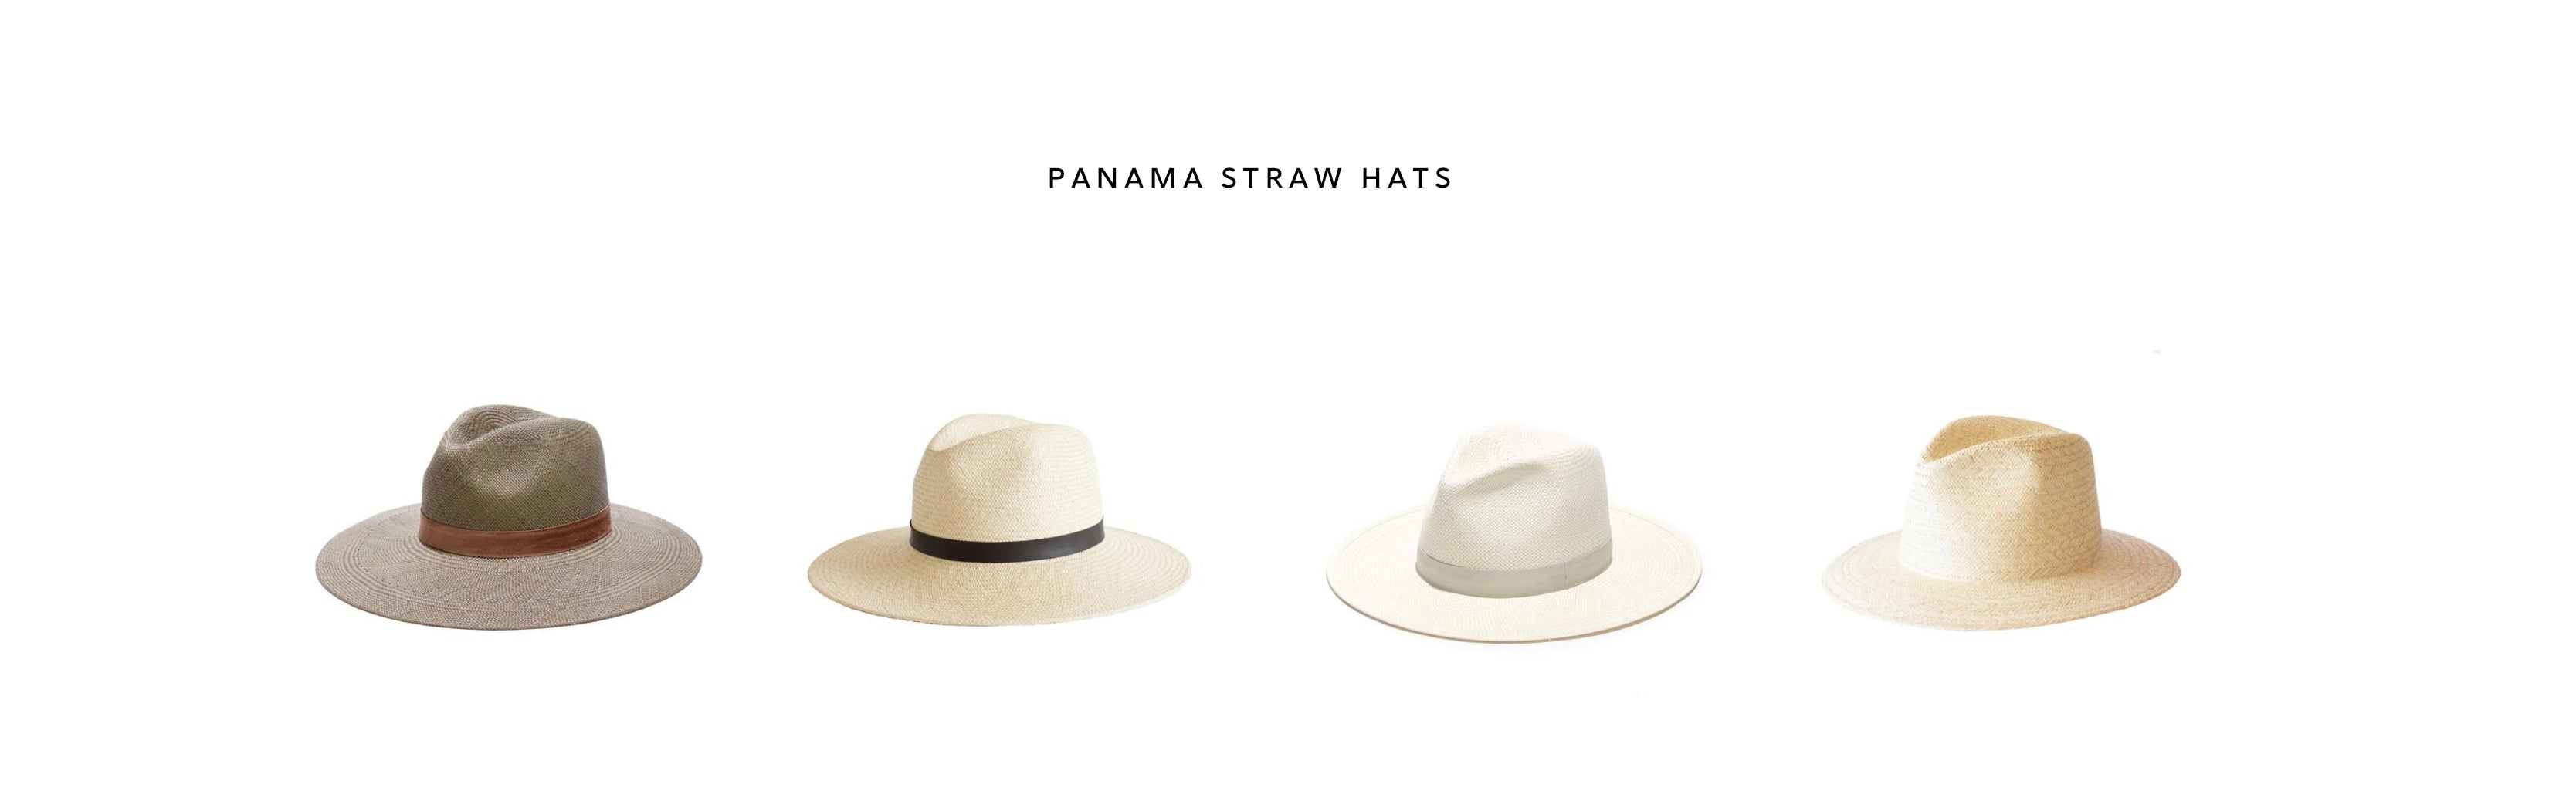 PANAMA STRAW HATS BY JANESSA LEONE